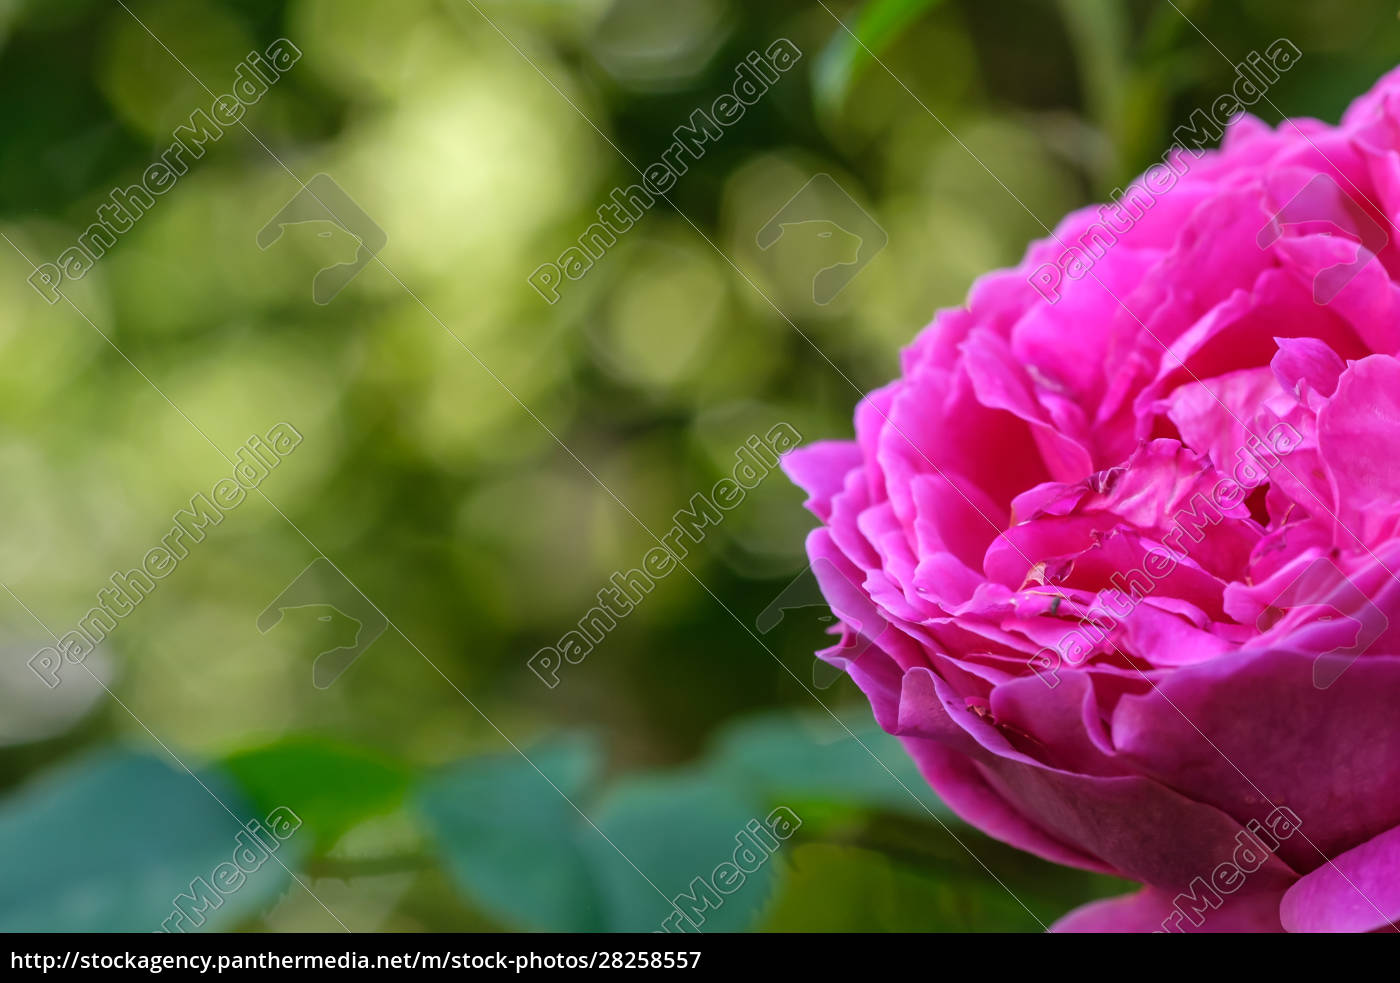 violet, rose, flower, in, front, of - 28258557